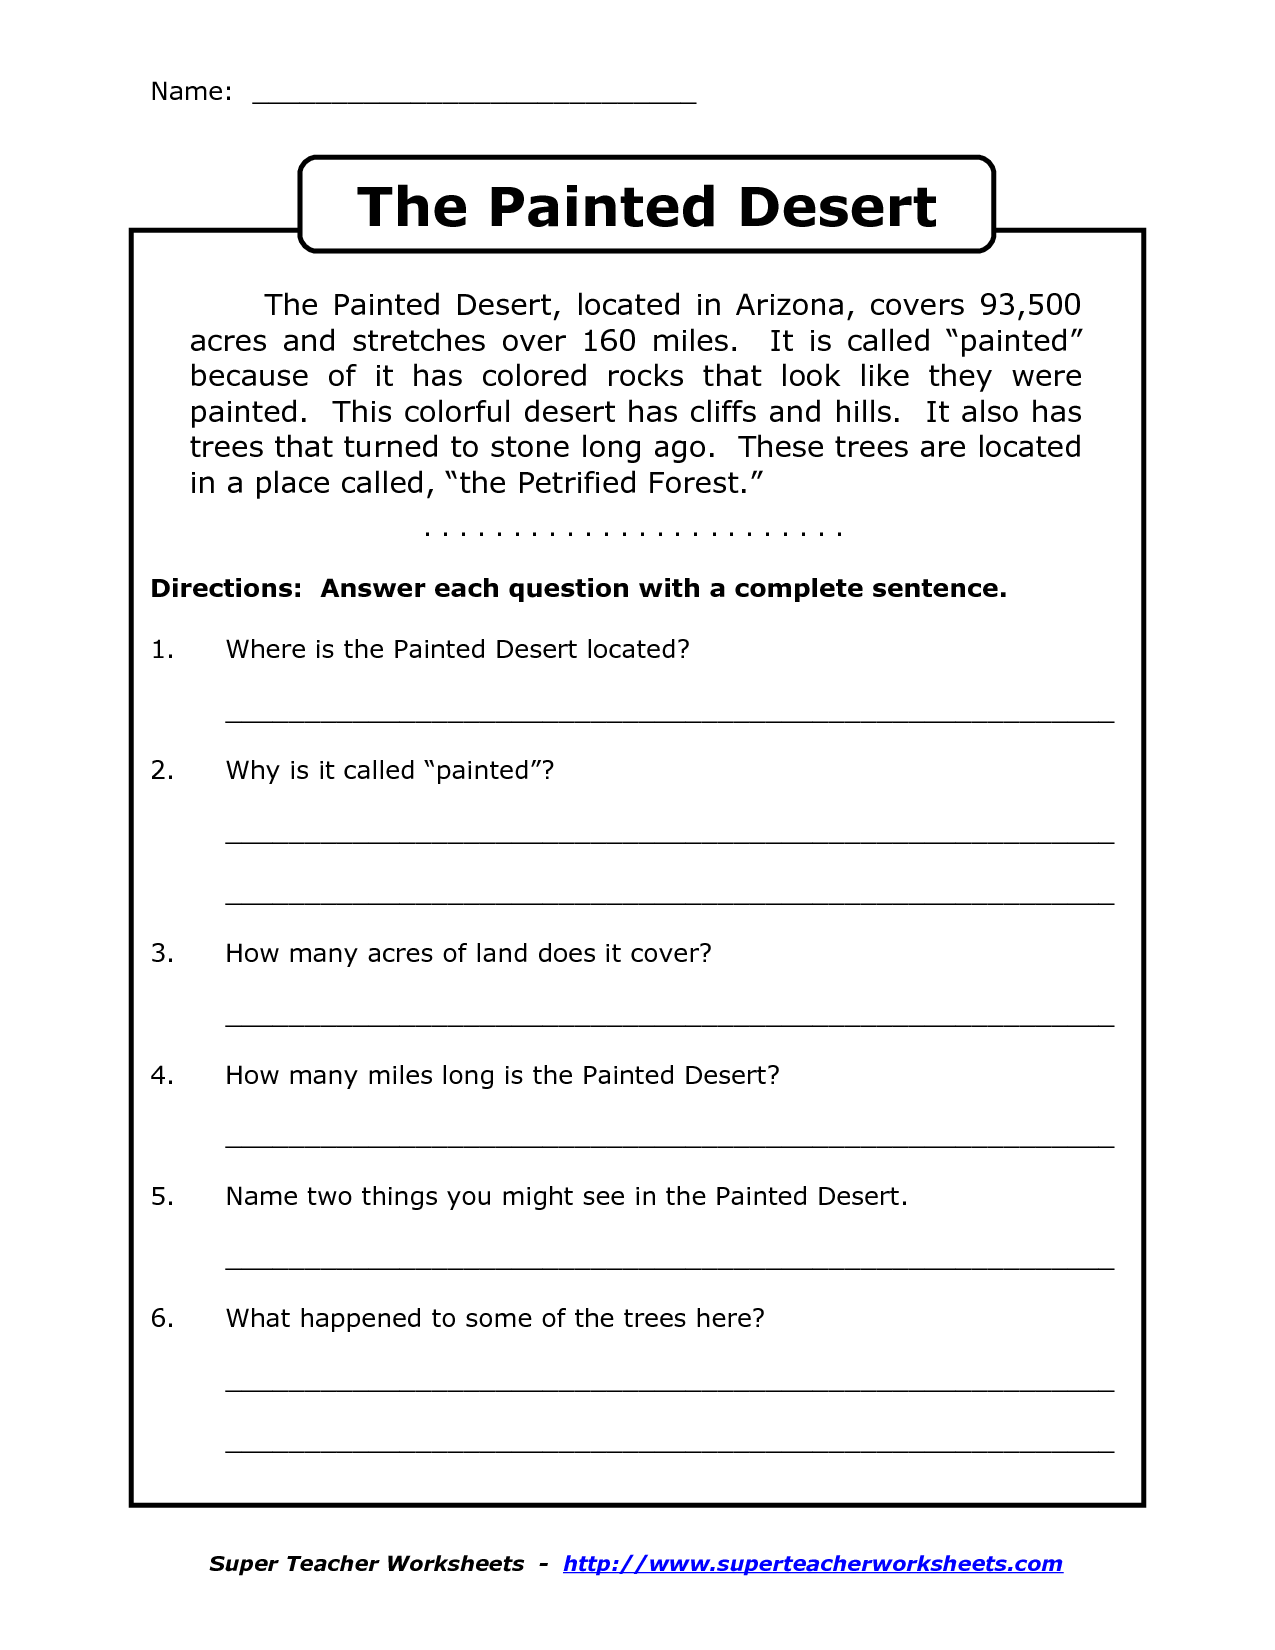 worksheet Reading Comprehension Worksheet 2nd Grade reading worksheets for 4th grade comprehension 3 name the painted desert